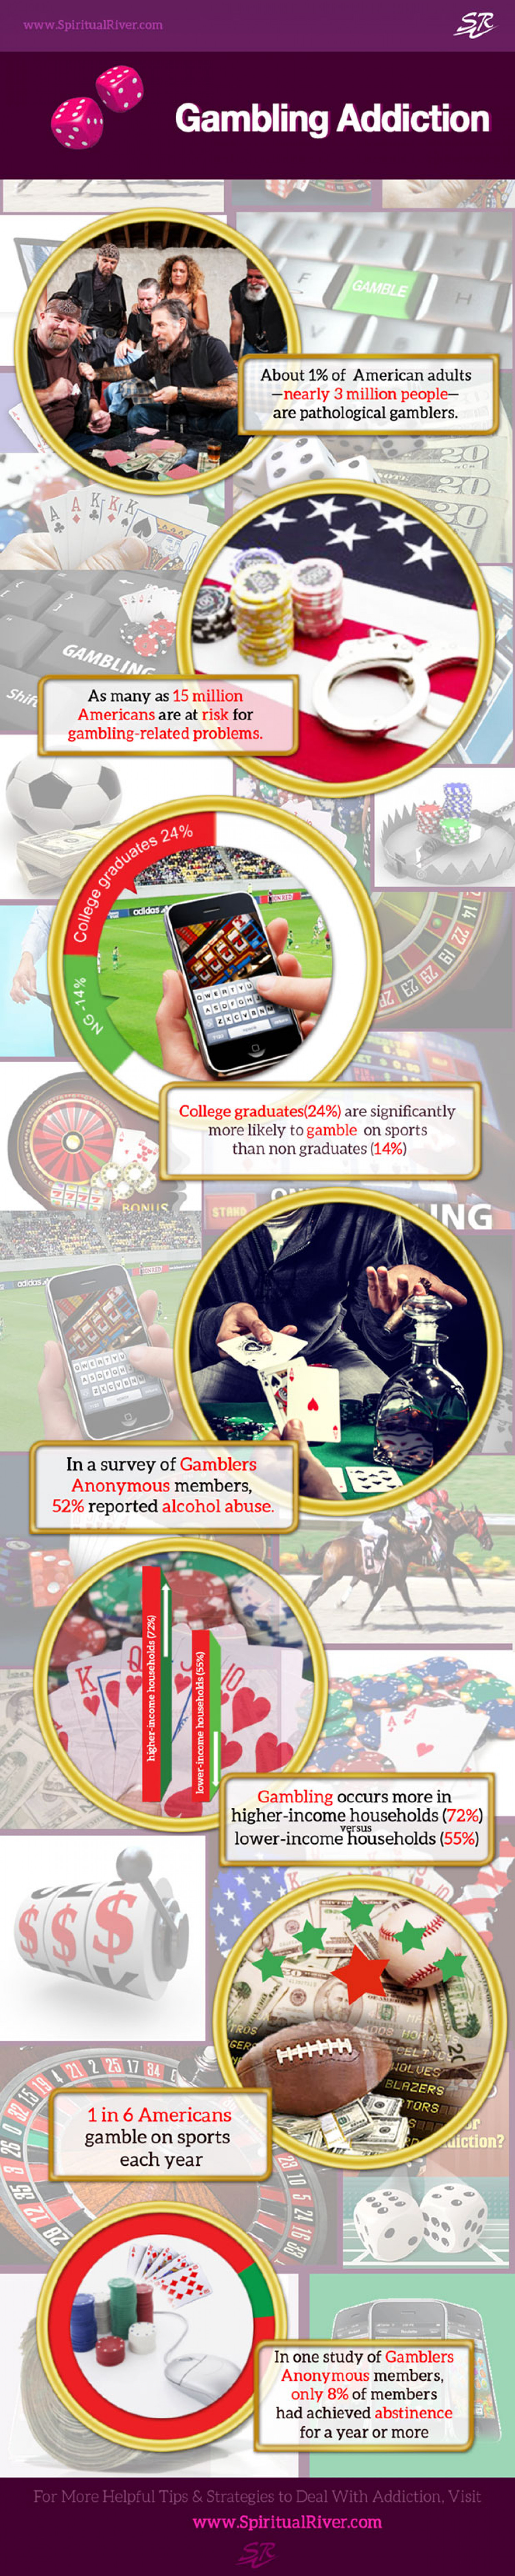 Gambling Addiction Infographic